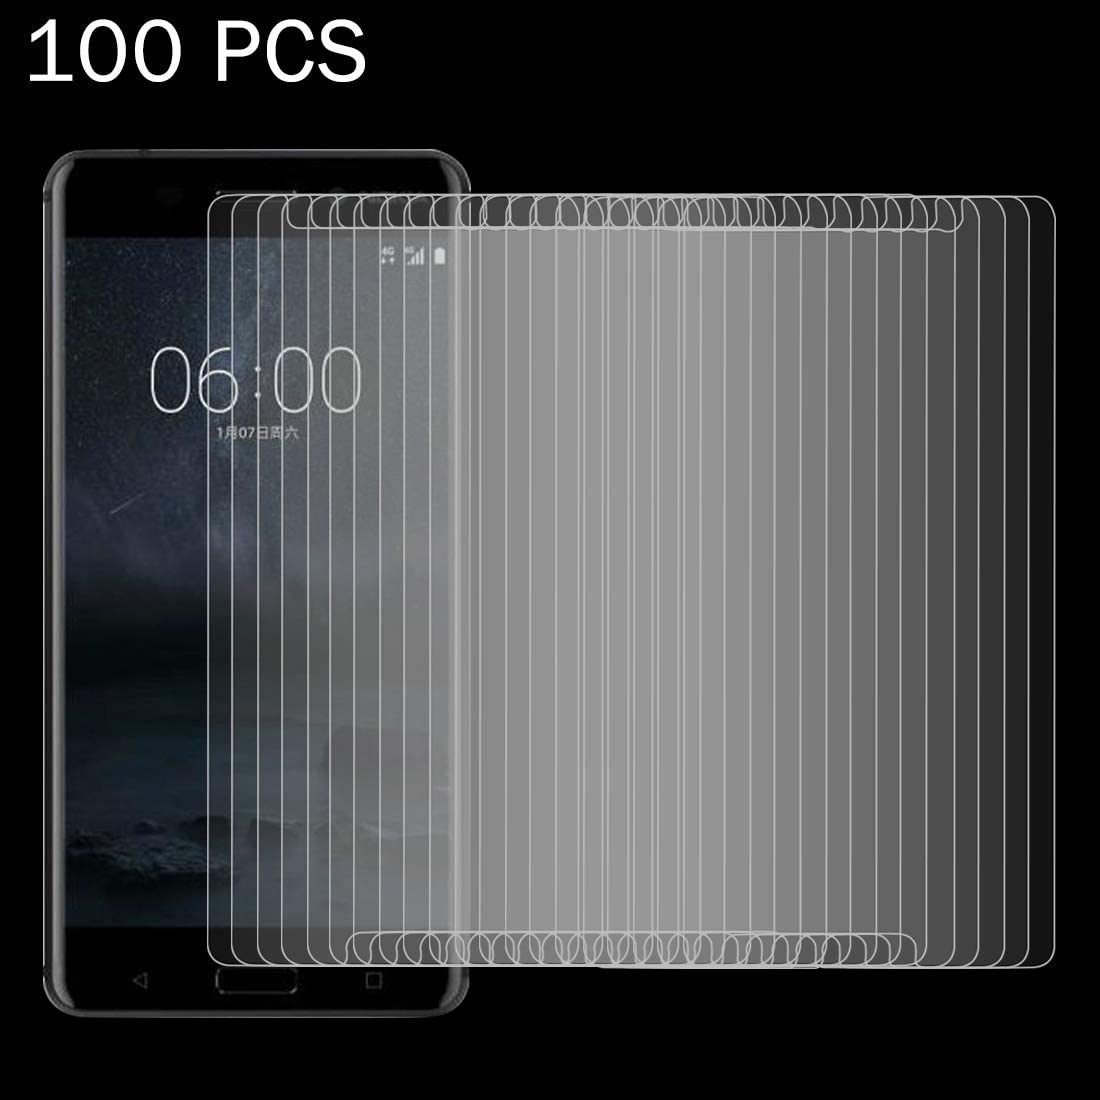 XHC Screen Protector Film 100 PCS for Nokia 6 0.26mm 9H Surface Hardness Explosion-Proof Non-Full Screen Tempered Glass Screen Film Tempered Glass Film